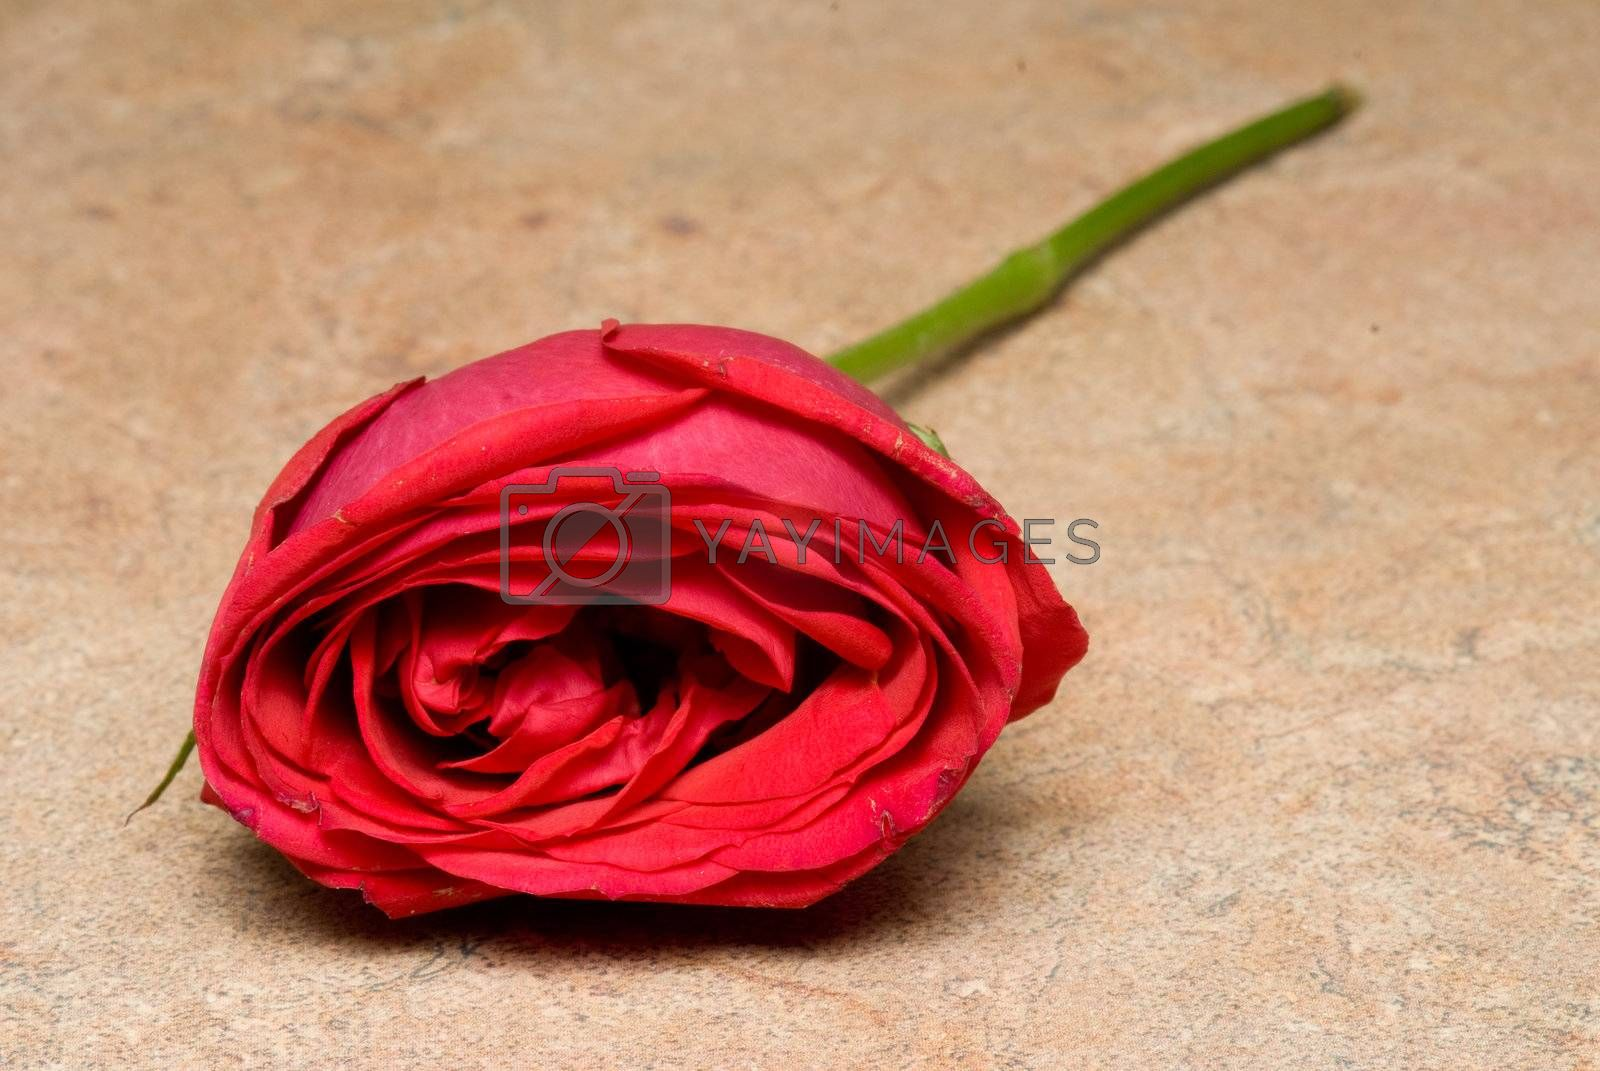 A single red rose for Valentine's day.